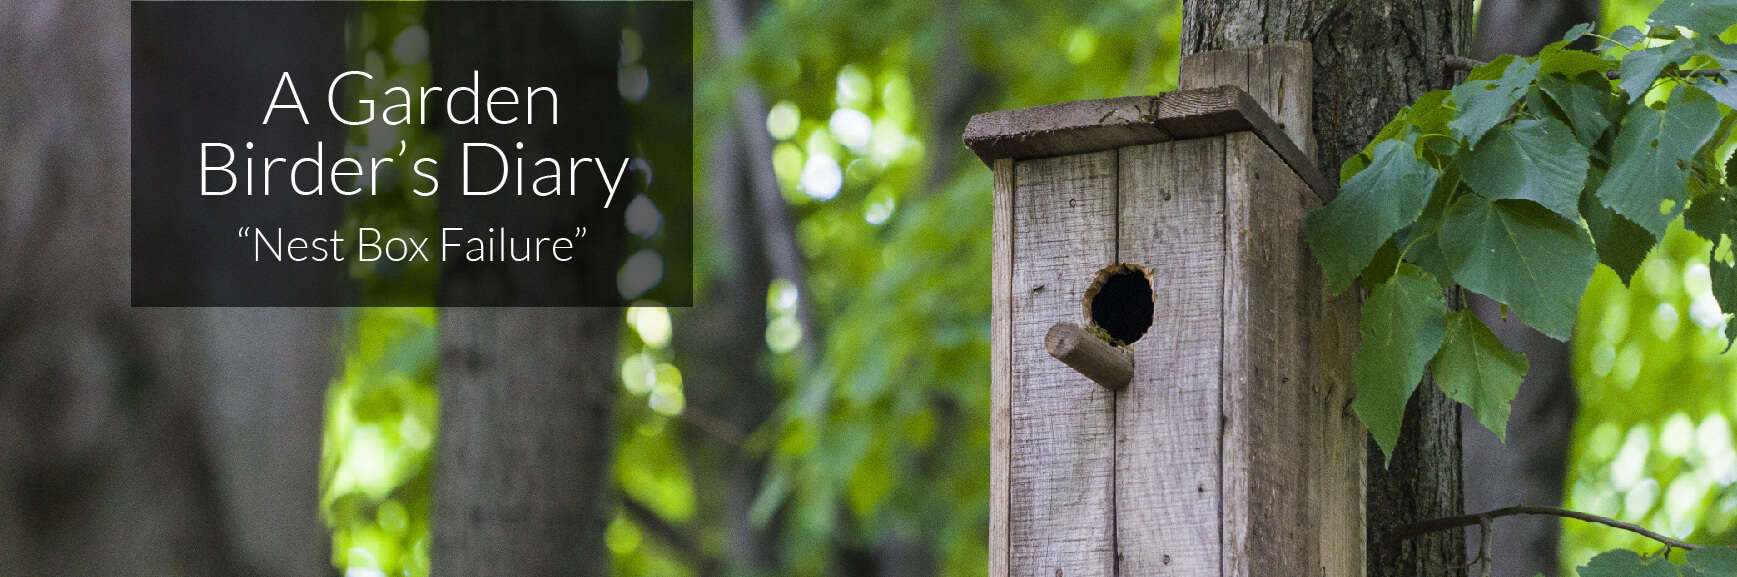 A Garden Birder's Diary – Nest Box Failure